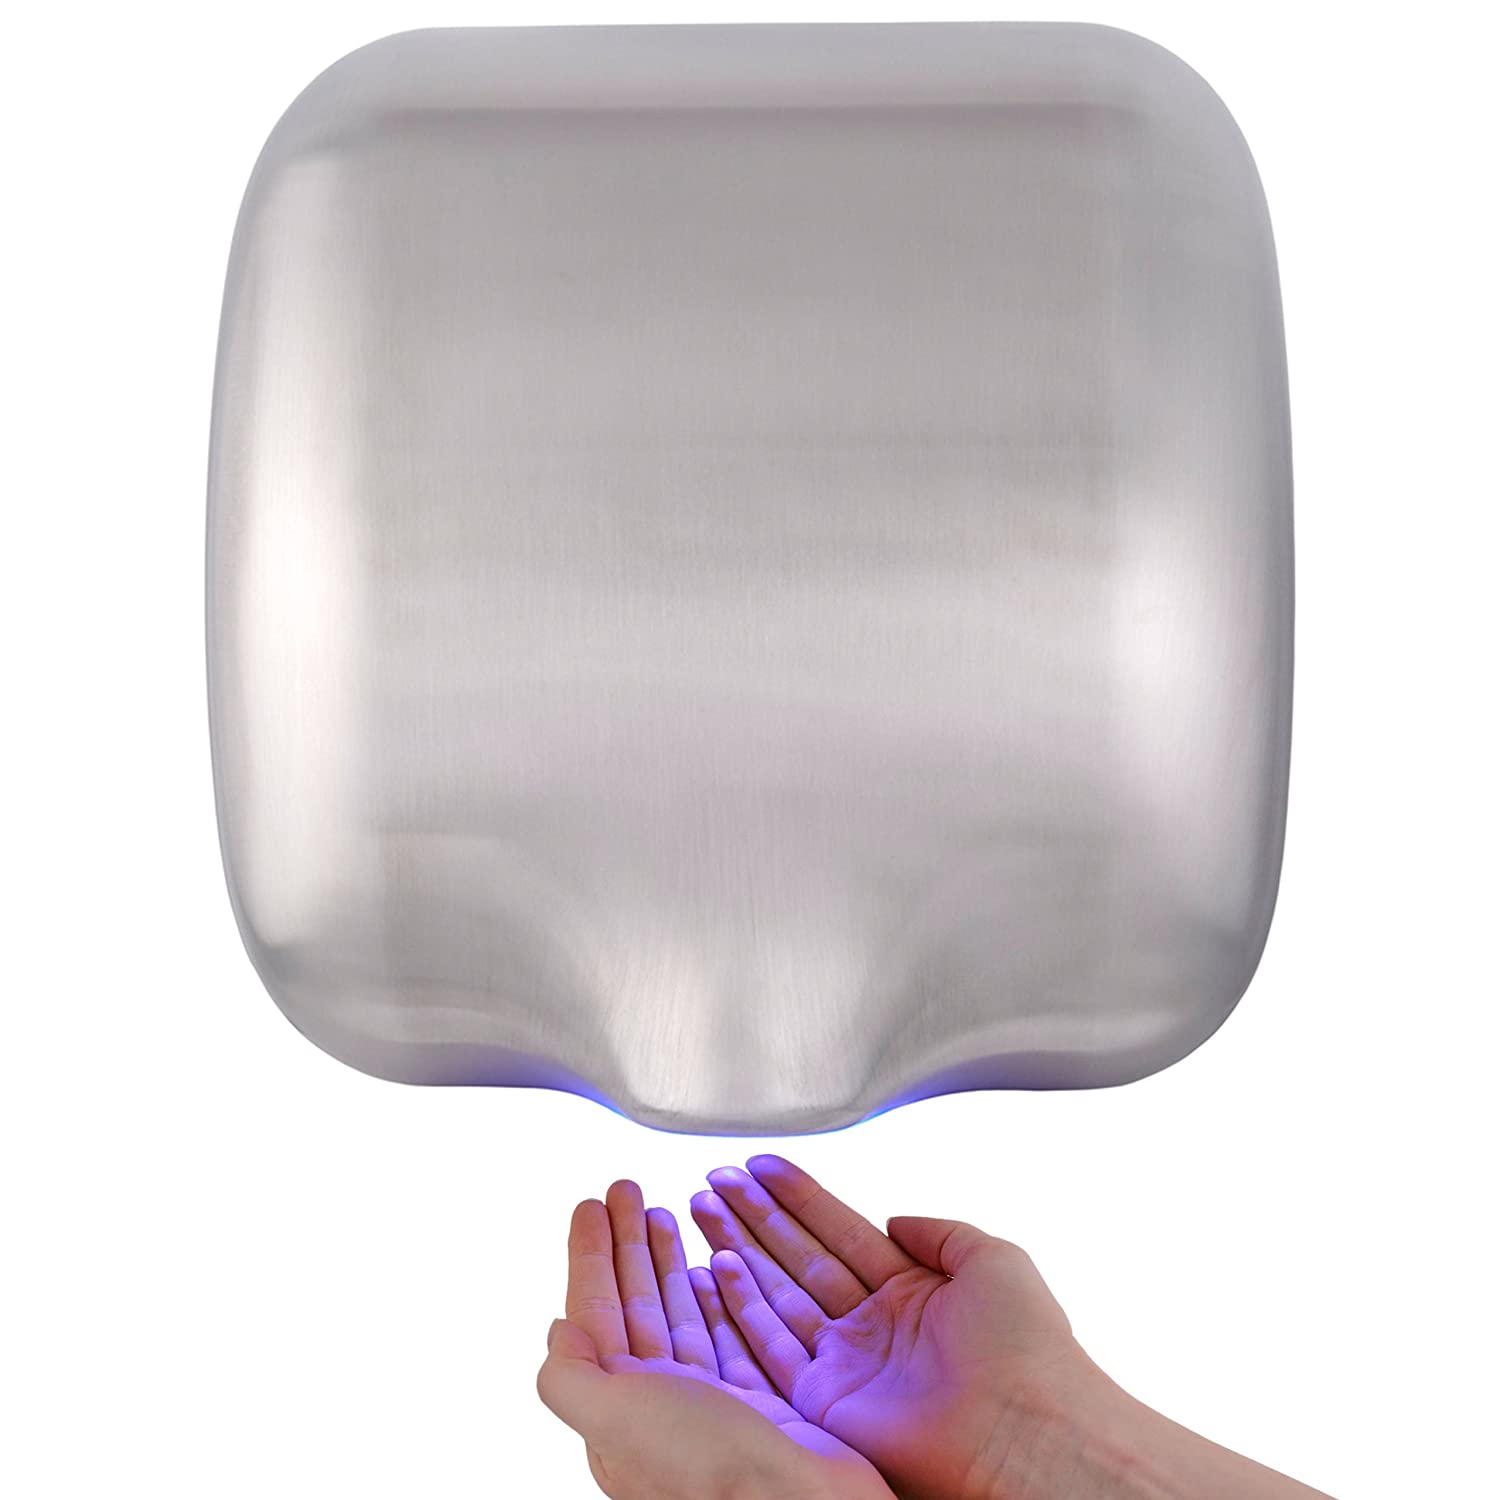 I-FORCE ECO DRY AUTOMATIC HIGH SPEED HAND DRYER ELECTRIC HEAVY DUTY - BRUSHED STAINLESS STEEL Washroom Hub